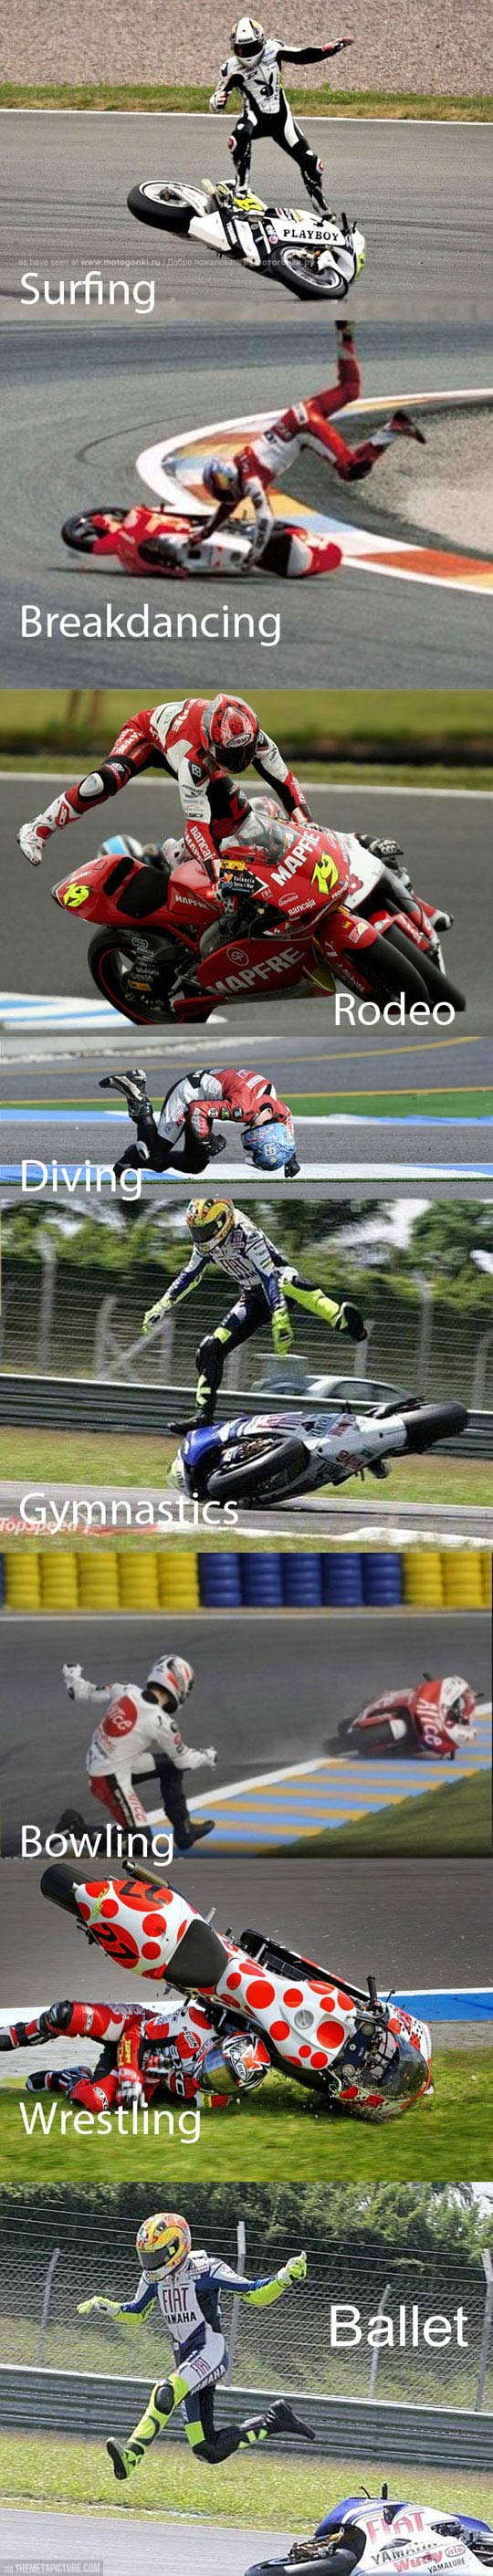 Sports combined with motorcycle racing…